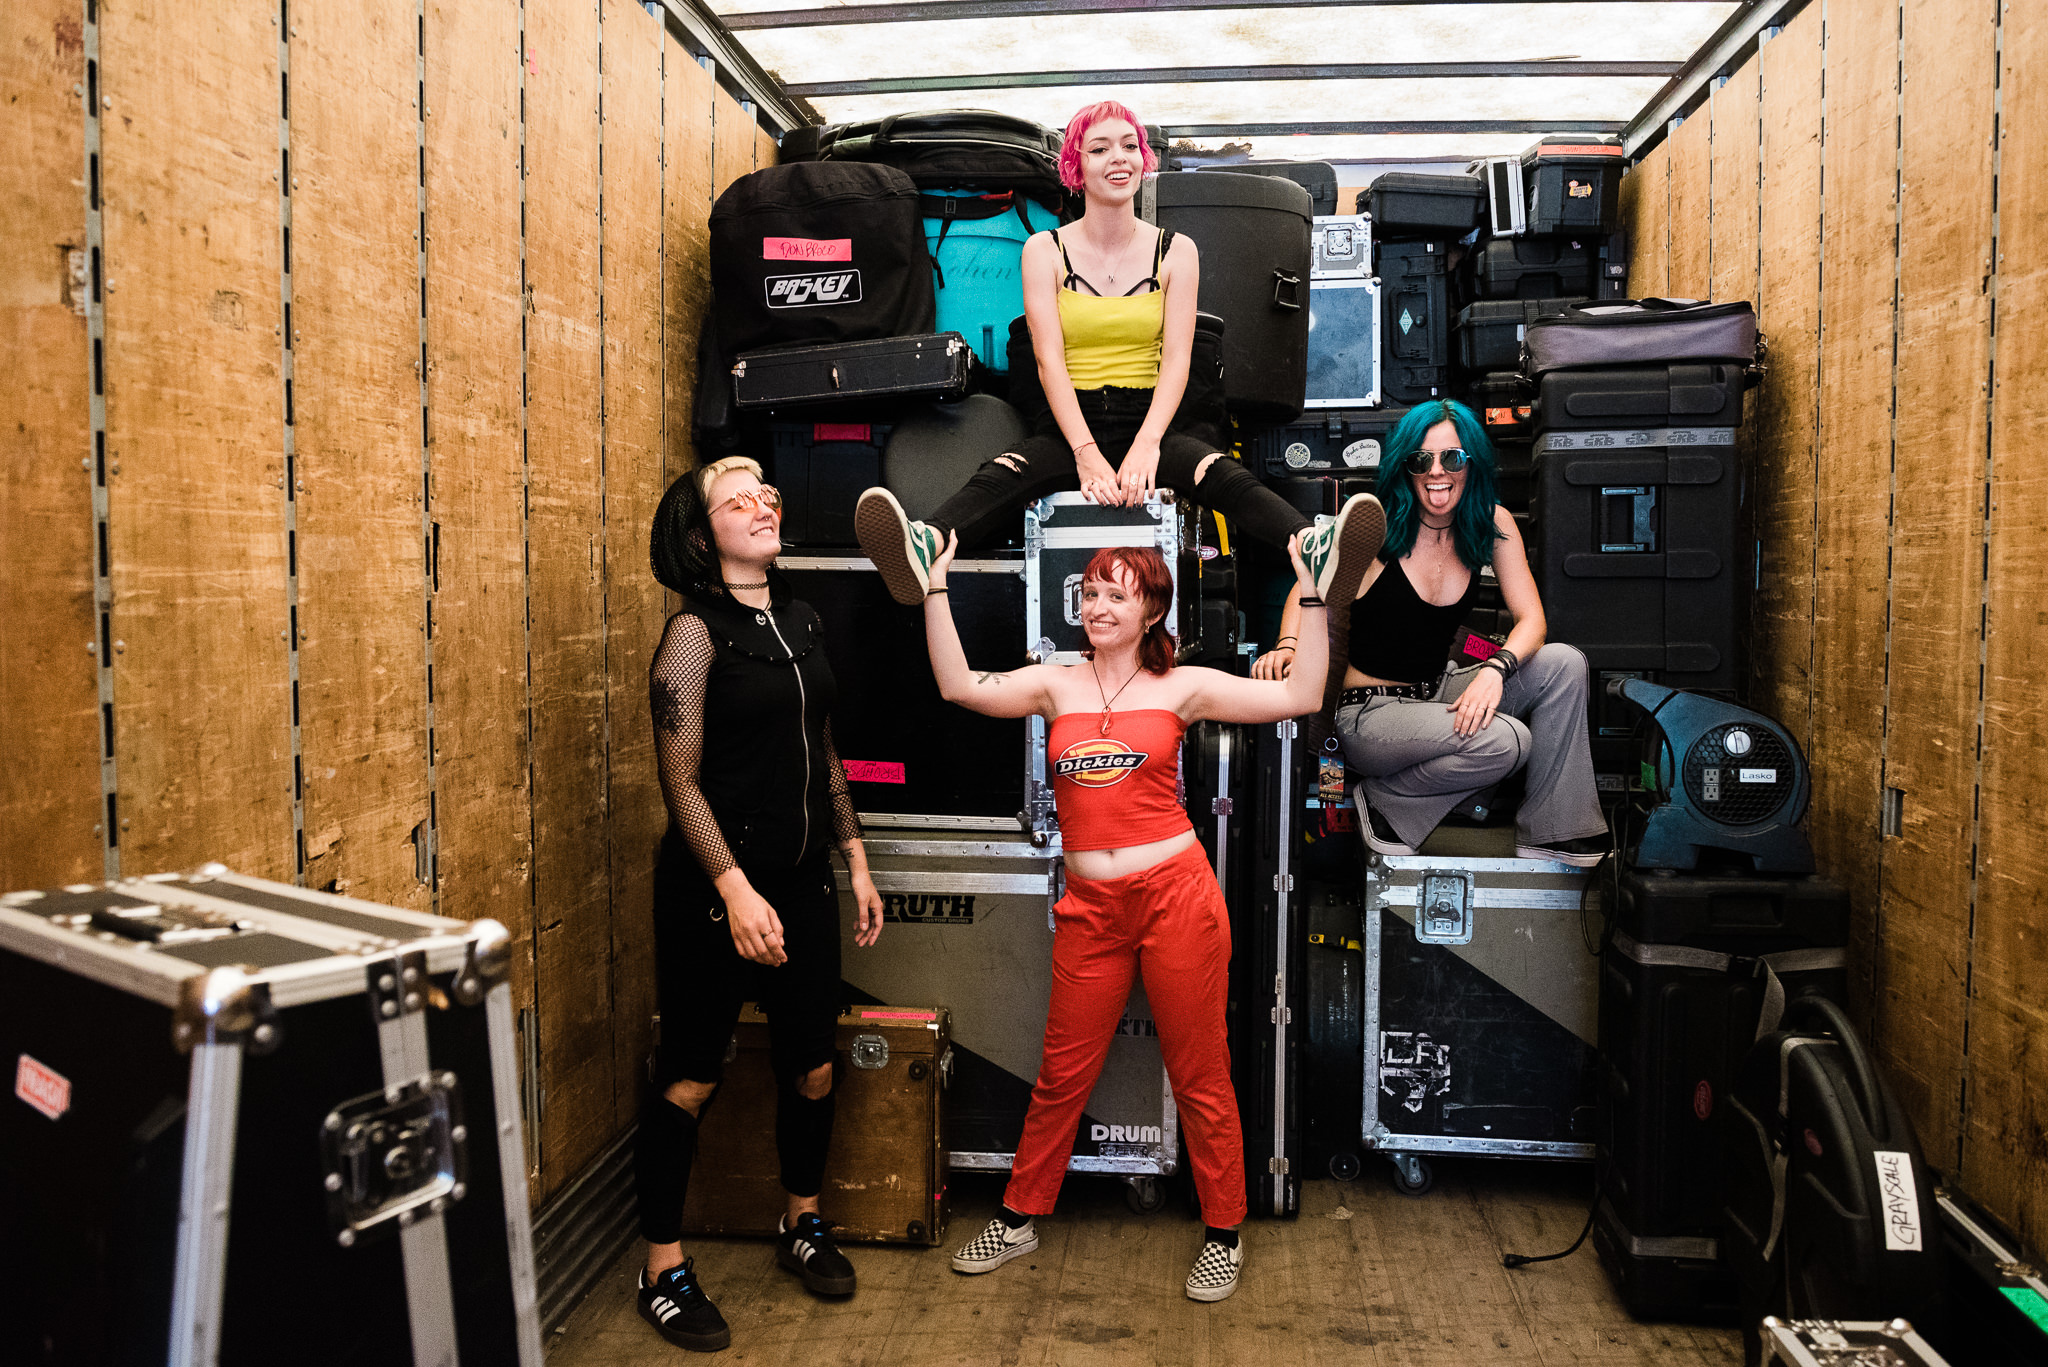 Doll Skin Warped Tour 2018 PNC Bank Arts Center Holmdel NJ Stars and Scars Photo